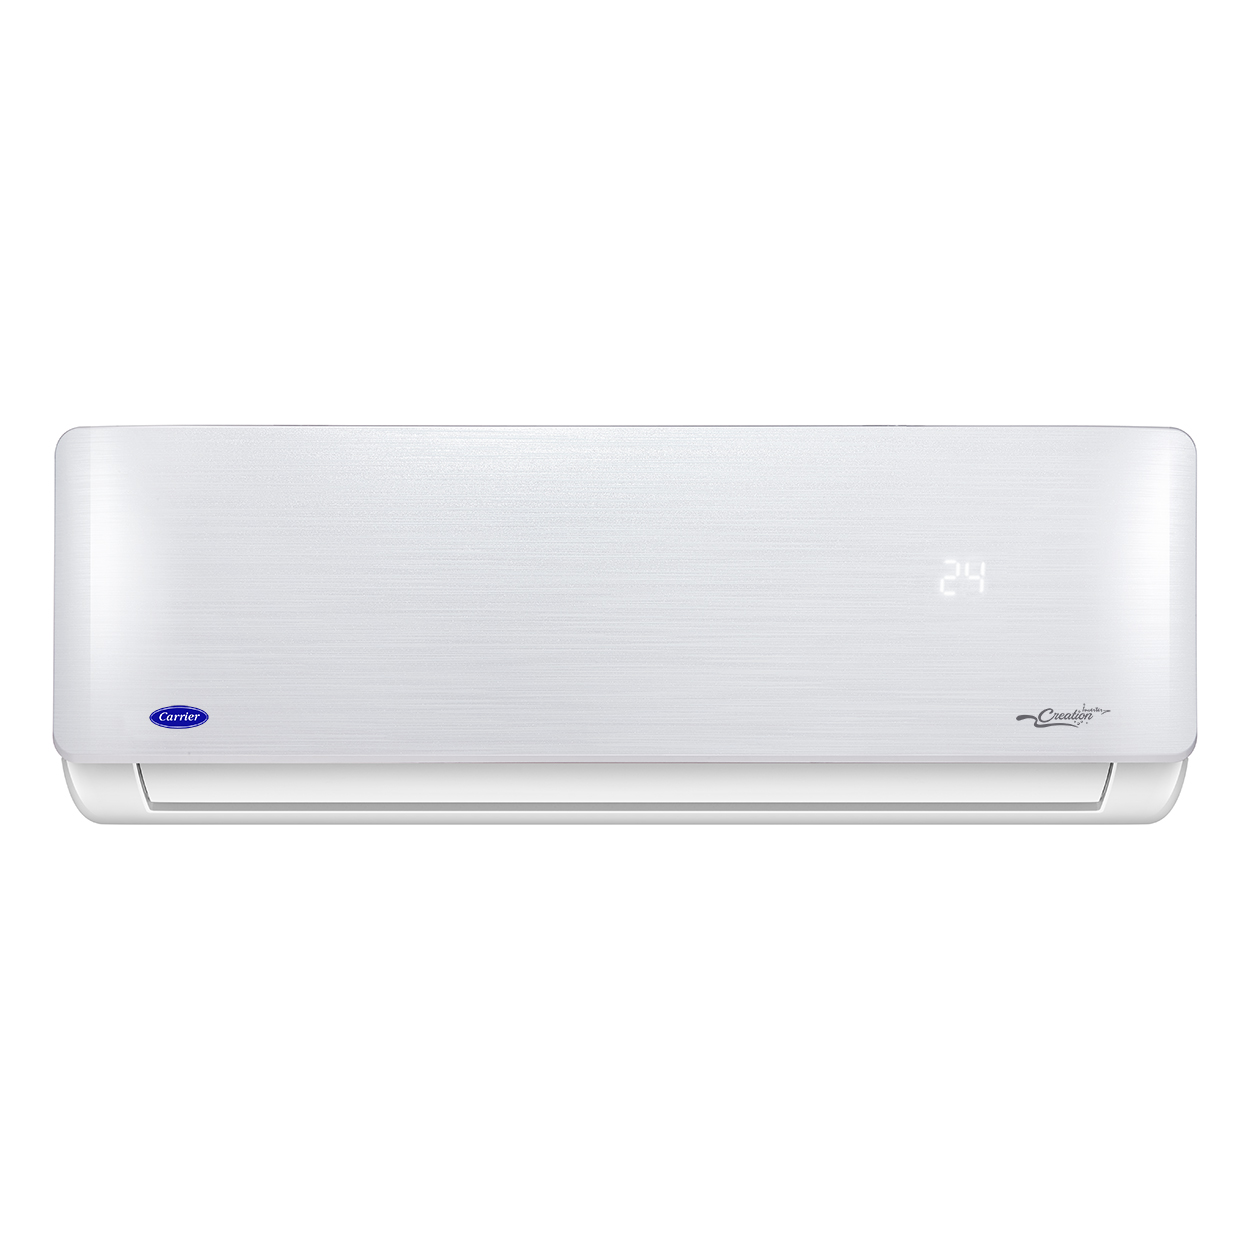 carrier-creation-inverter-ductless-condensing-unit